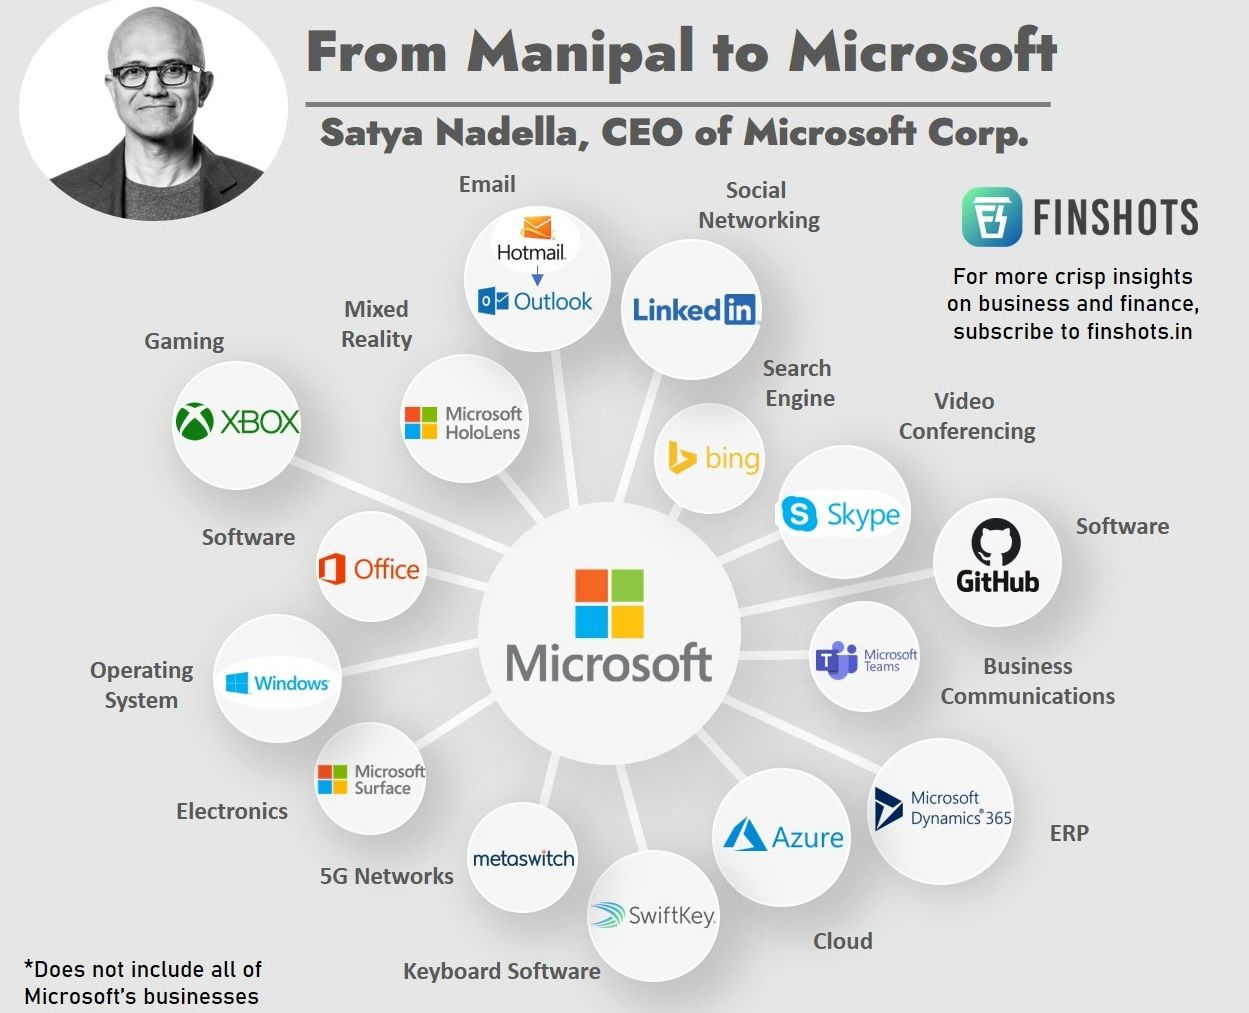 From Manipal to Microsoft